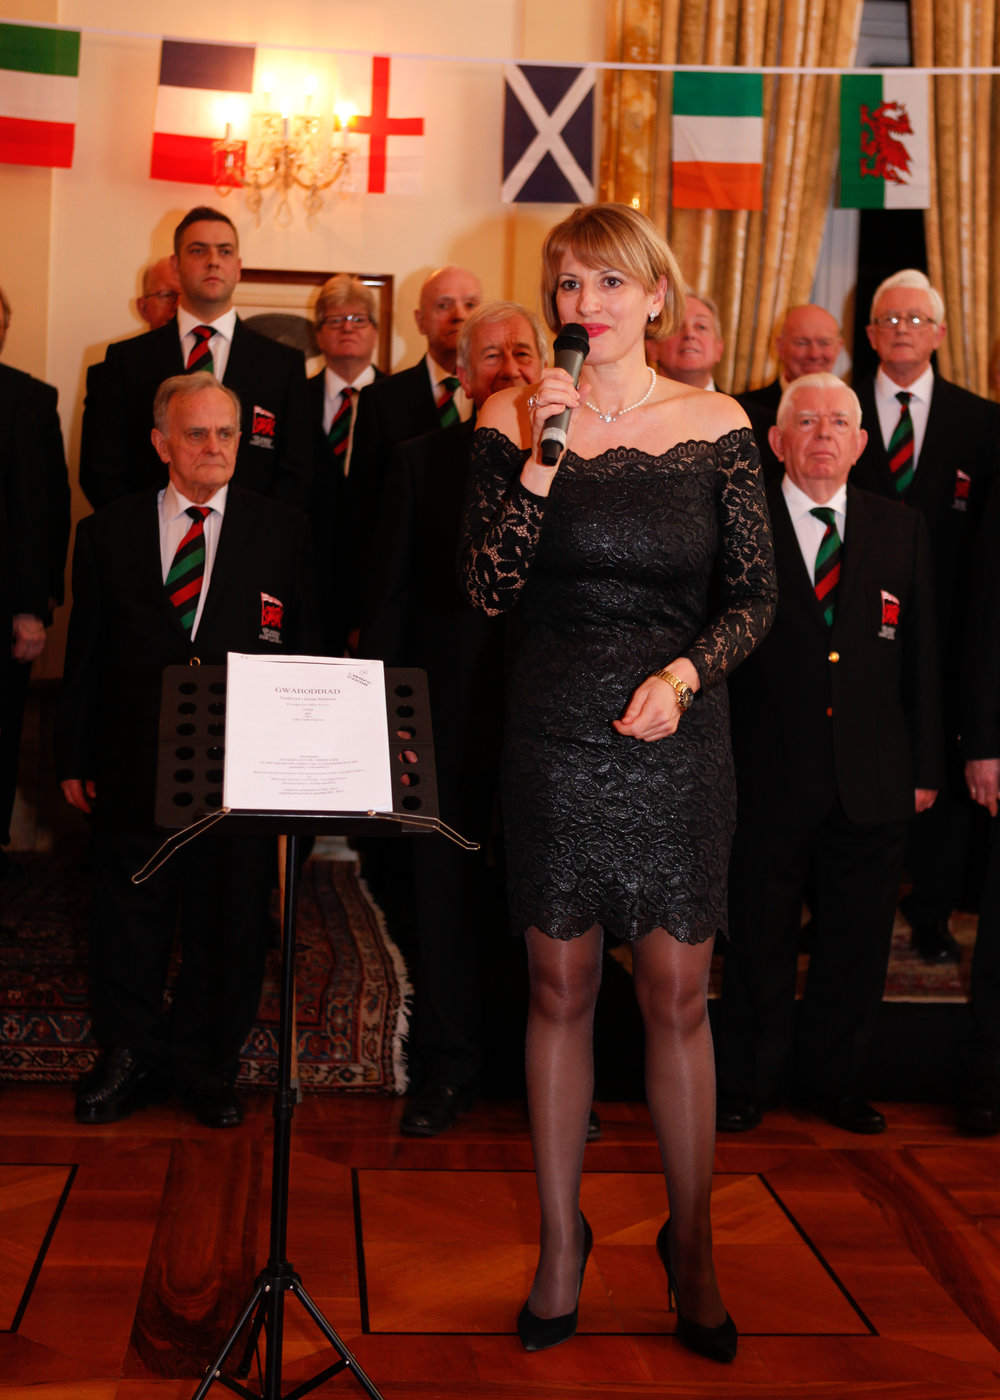 italy-wales-rugby-reception_46335203214_o.jpg